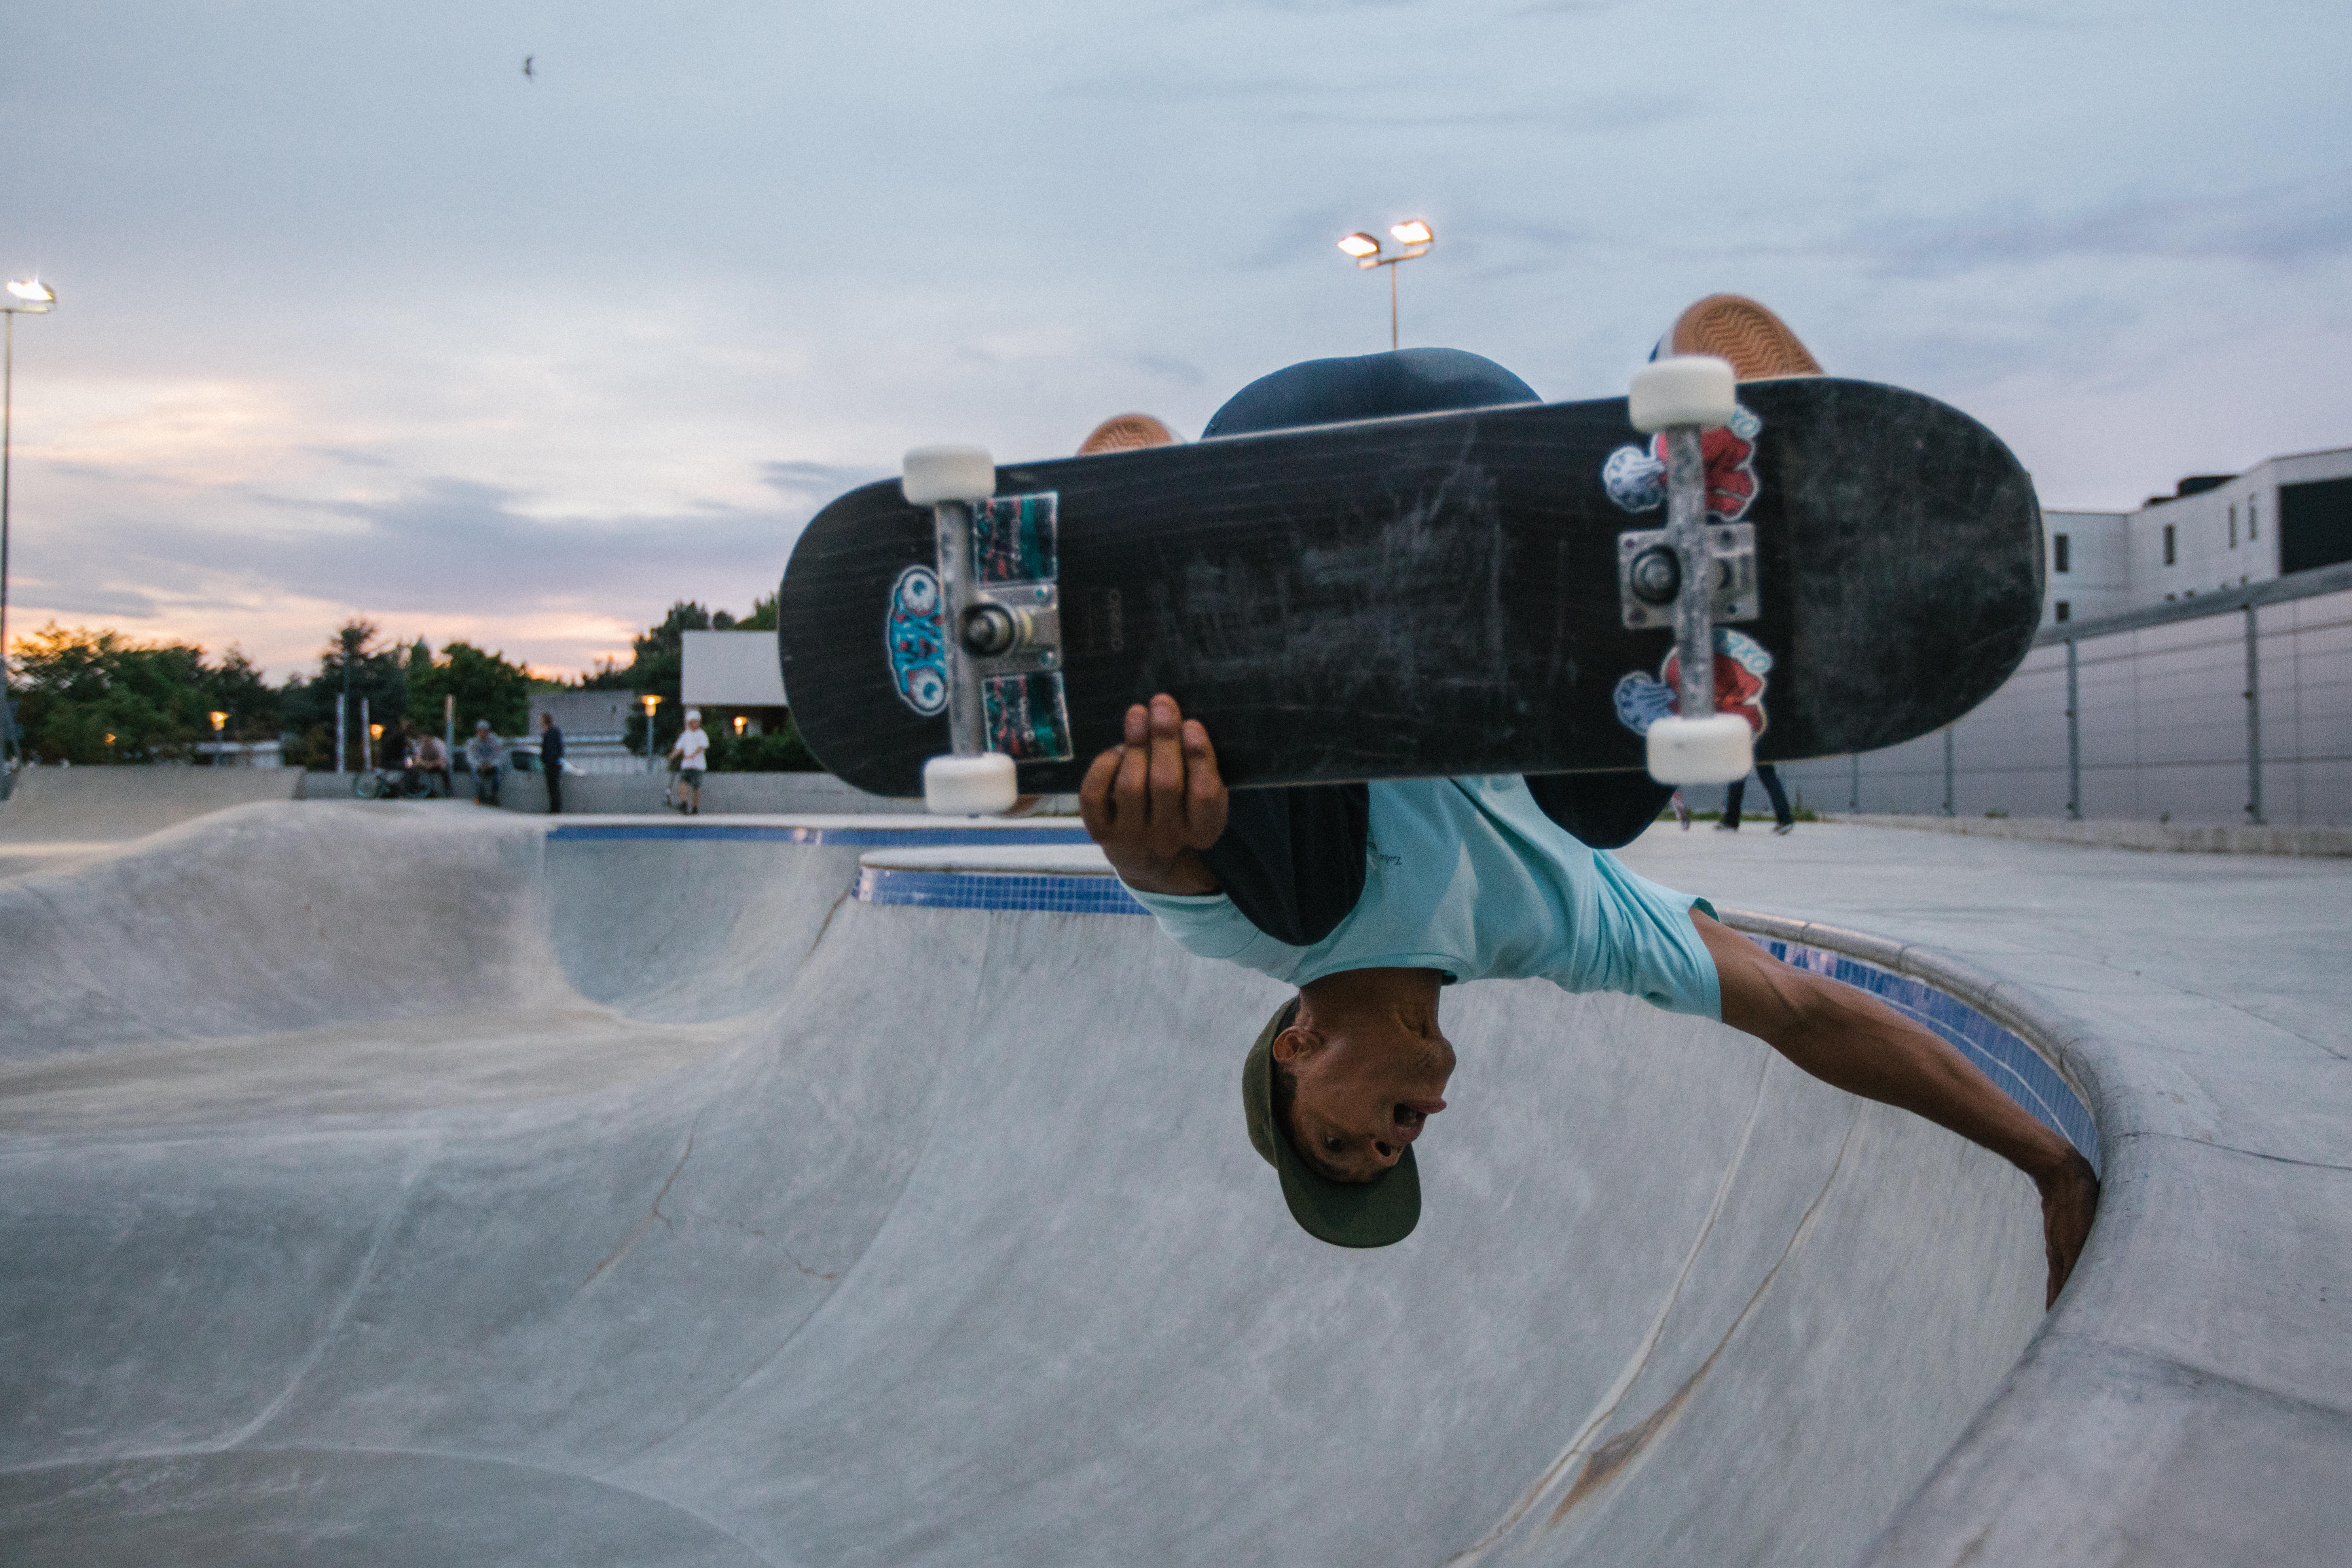 Skateboarders are Changemakers - Tour Europe